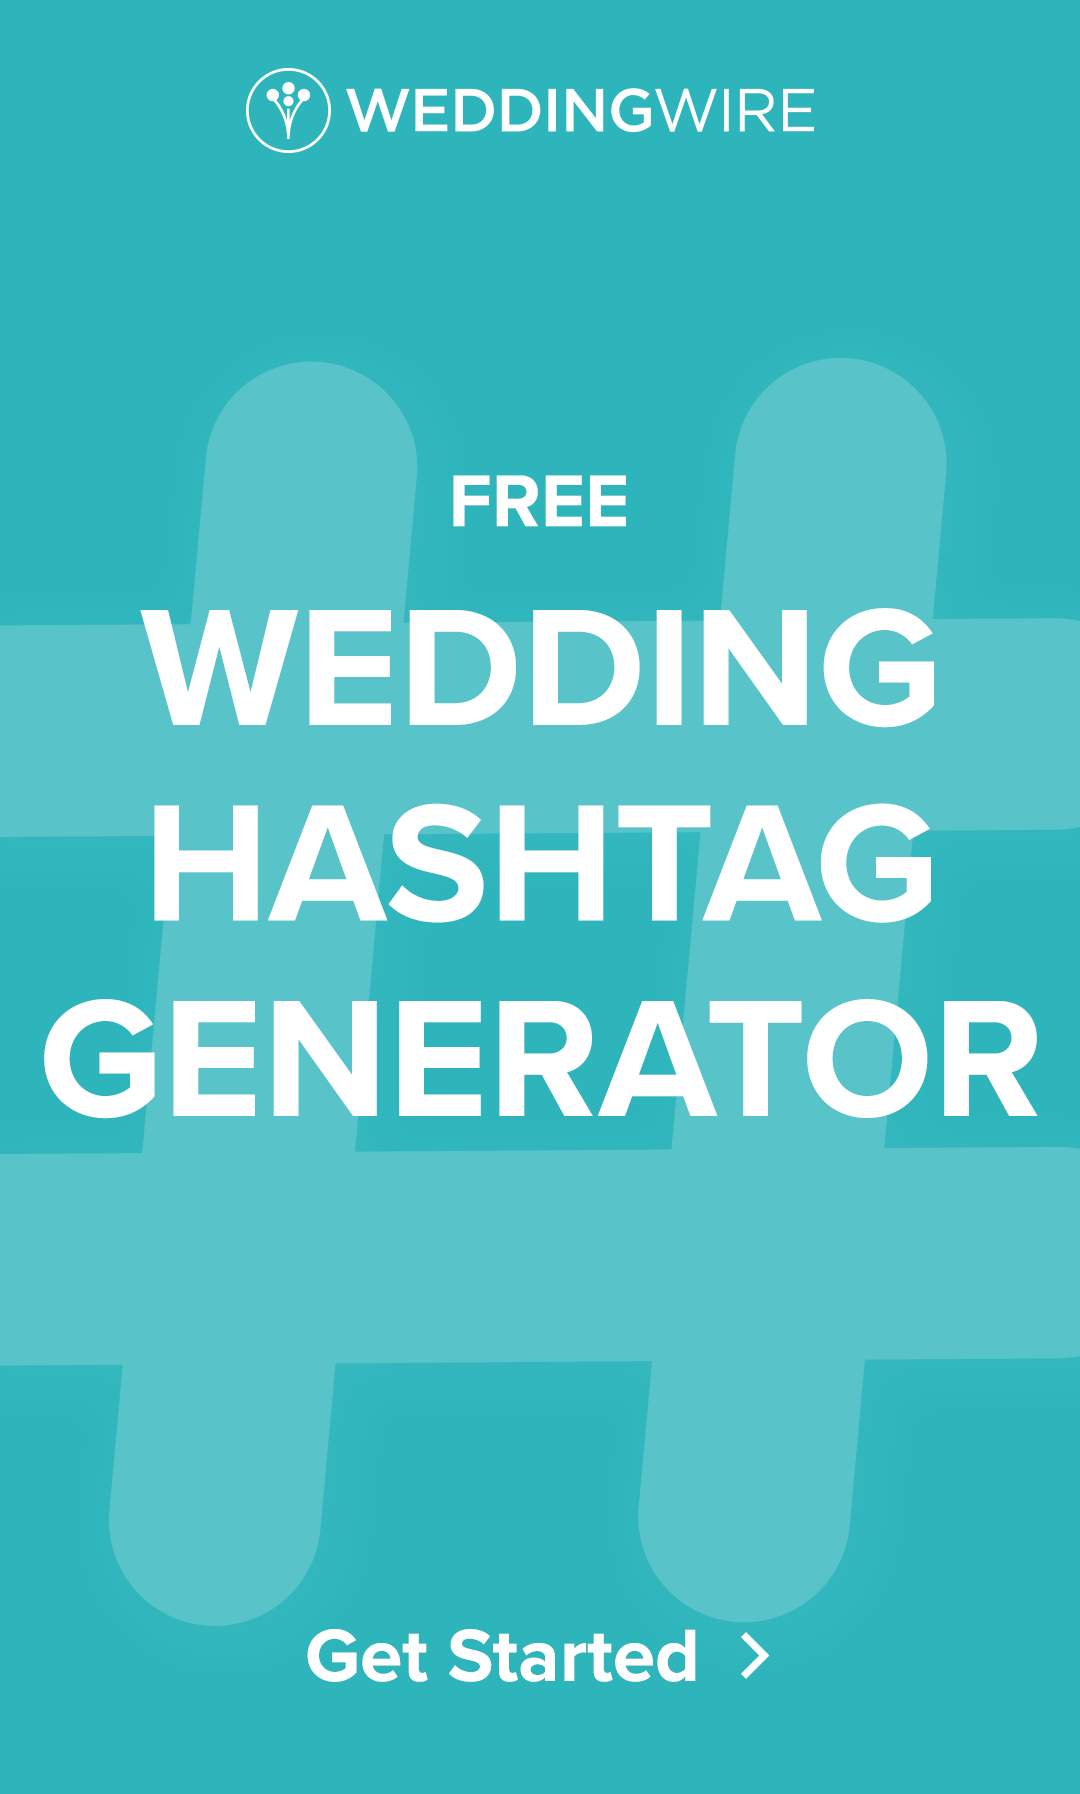 Get creative wedding hashtag ideas for your big day with